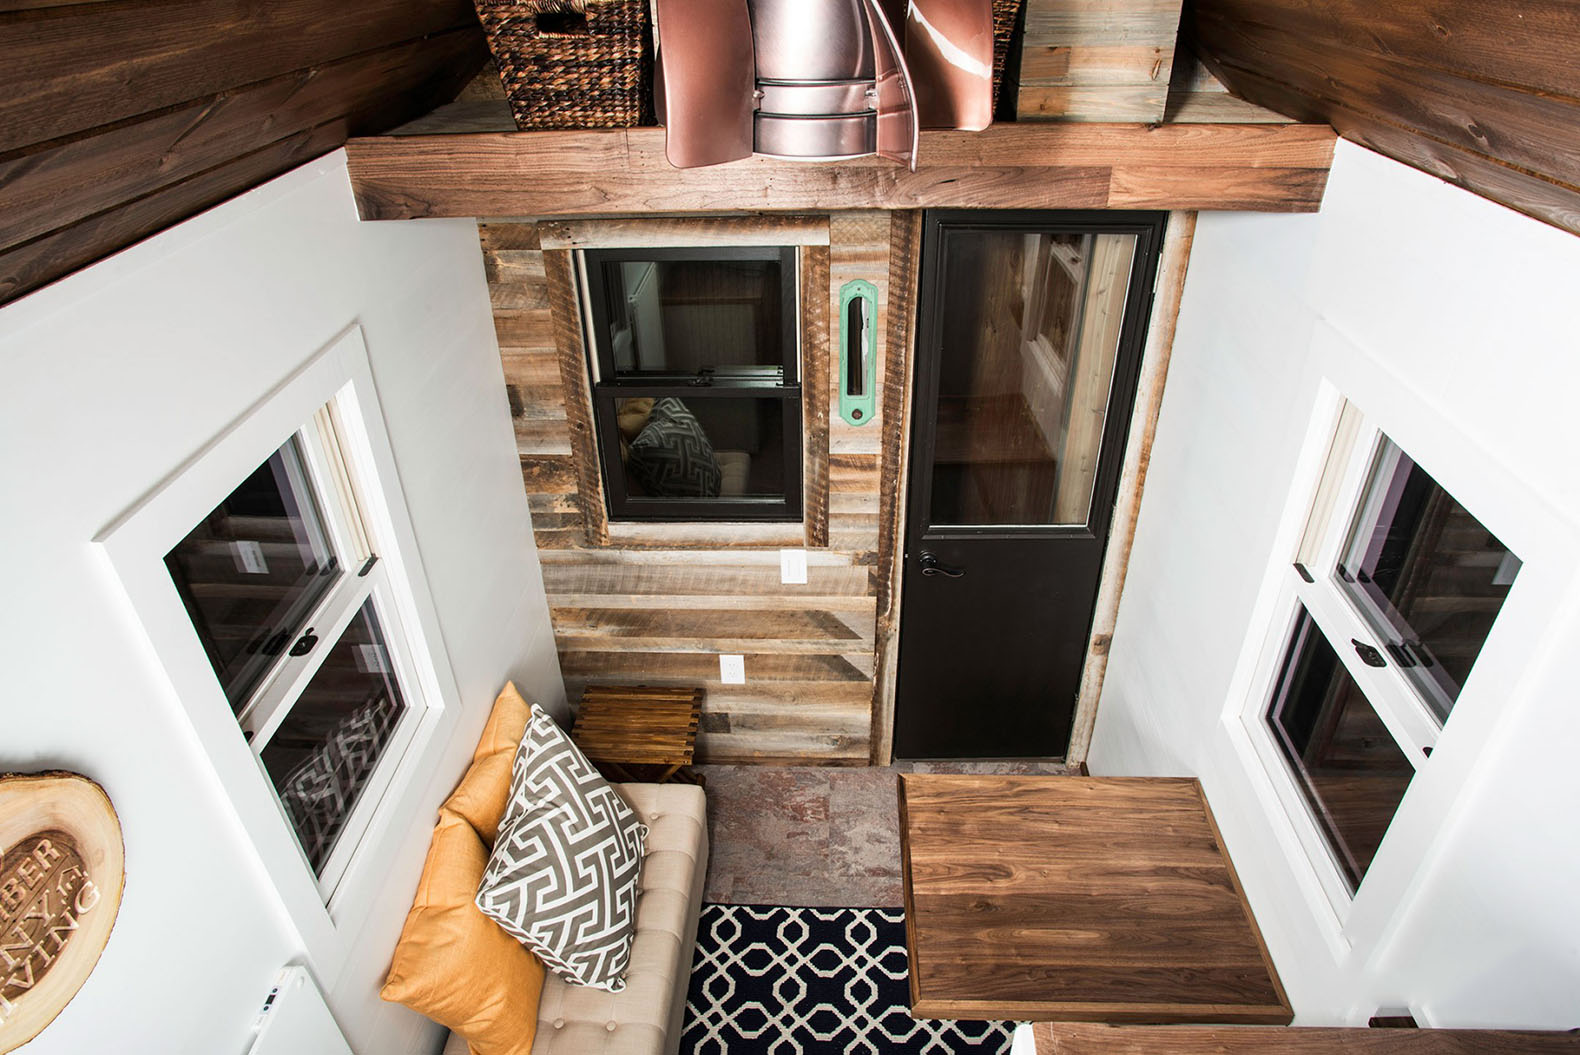 84 Lumber launches gorgeous tiny homes that you can buy or build yourself